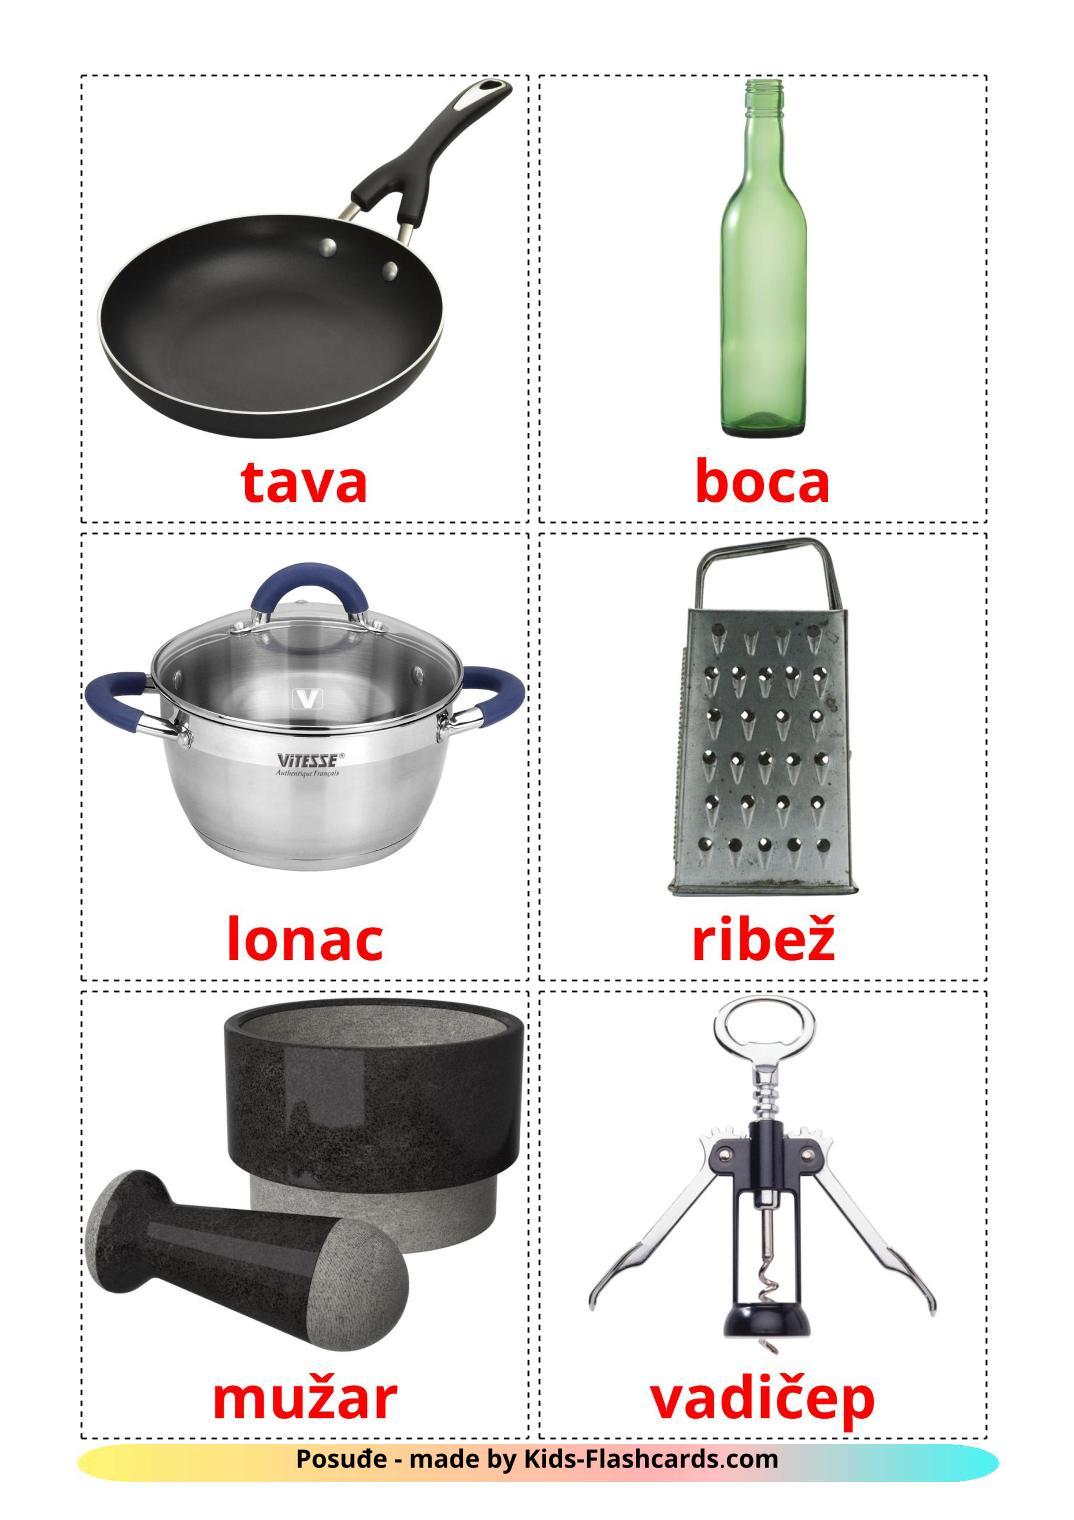 Kitchenware - 35 Free Printable croatian Flashcards